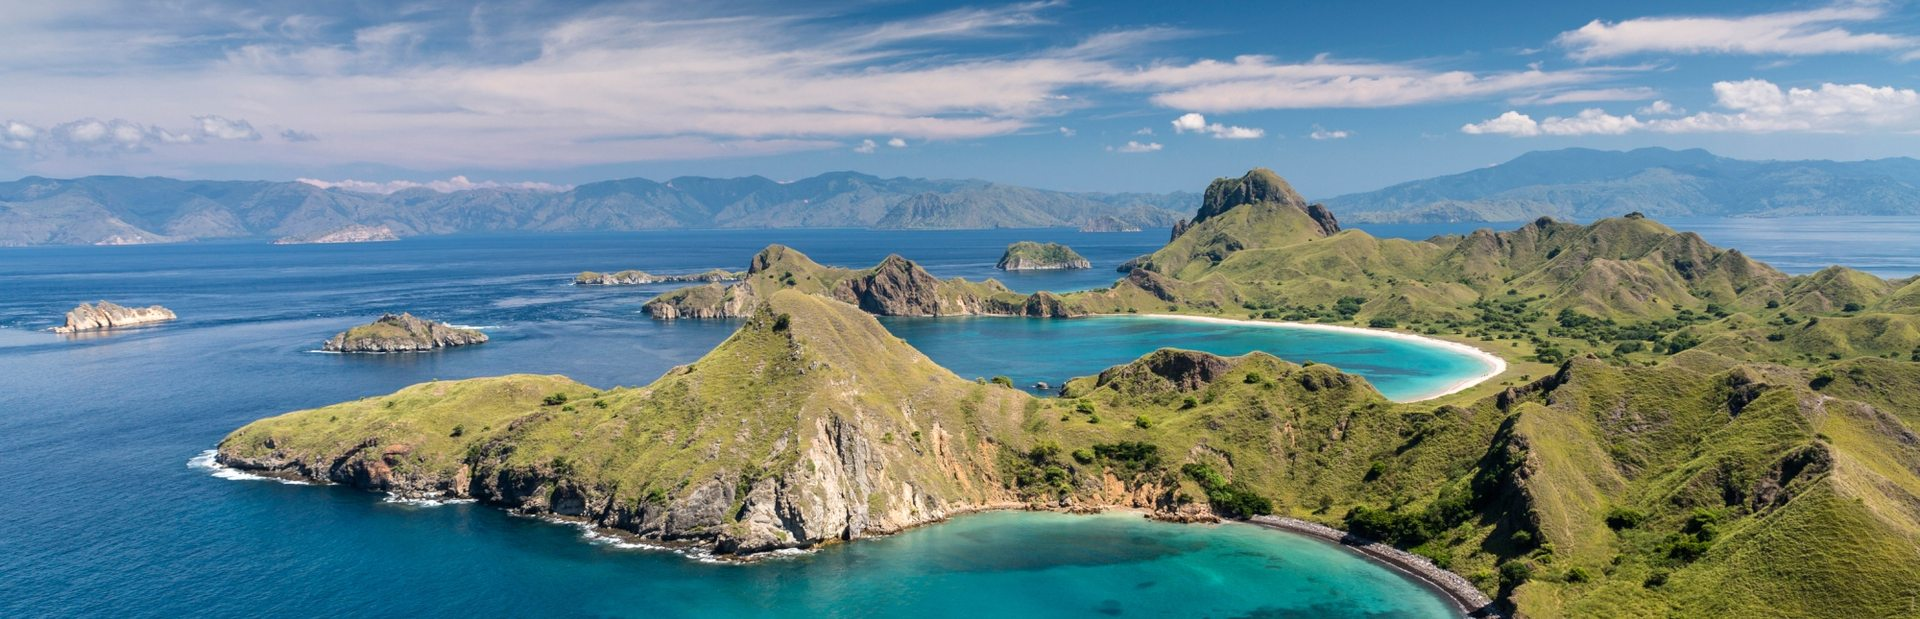 5 Reasons to Visit Flores on a Luxury Yacht Charter